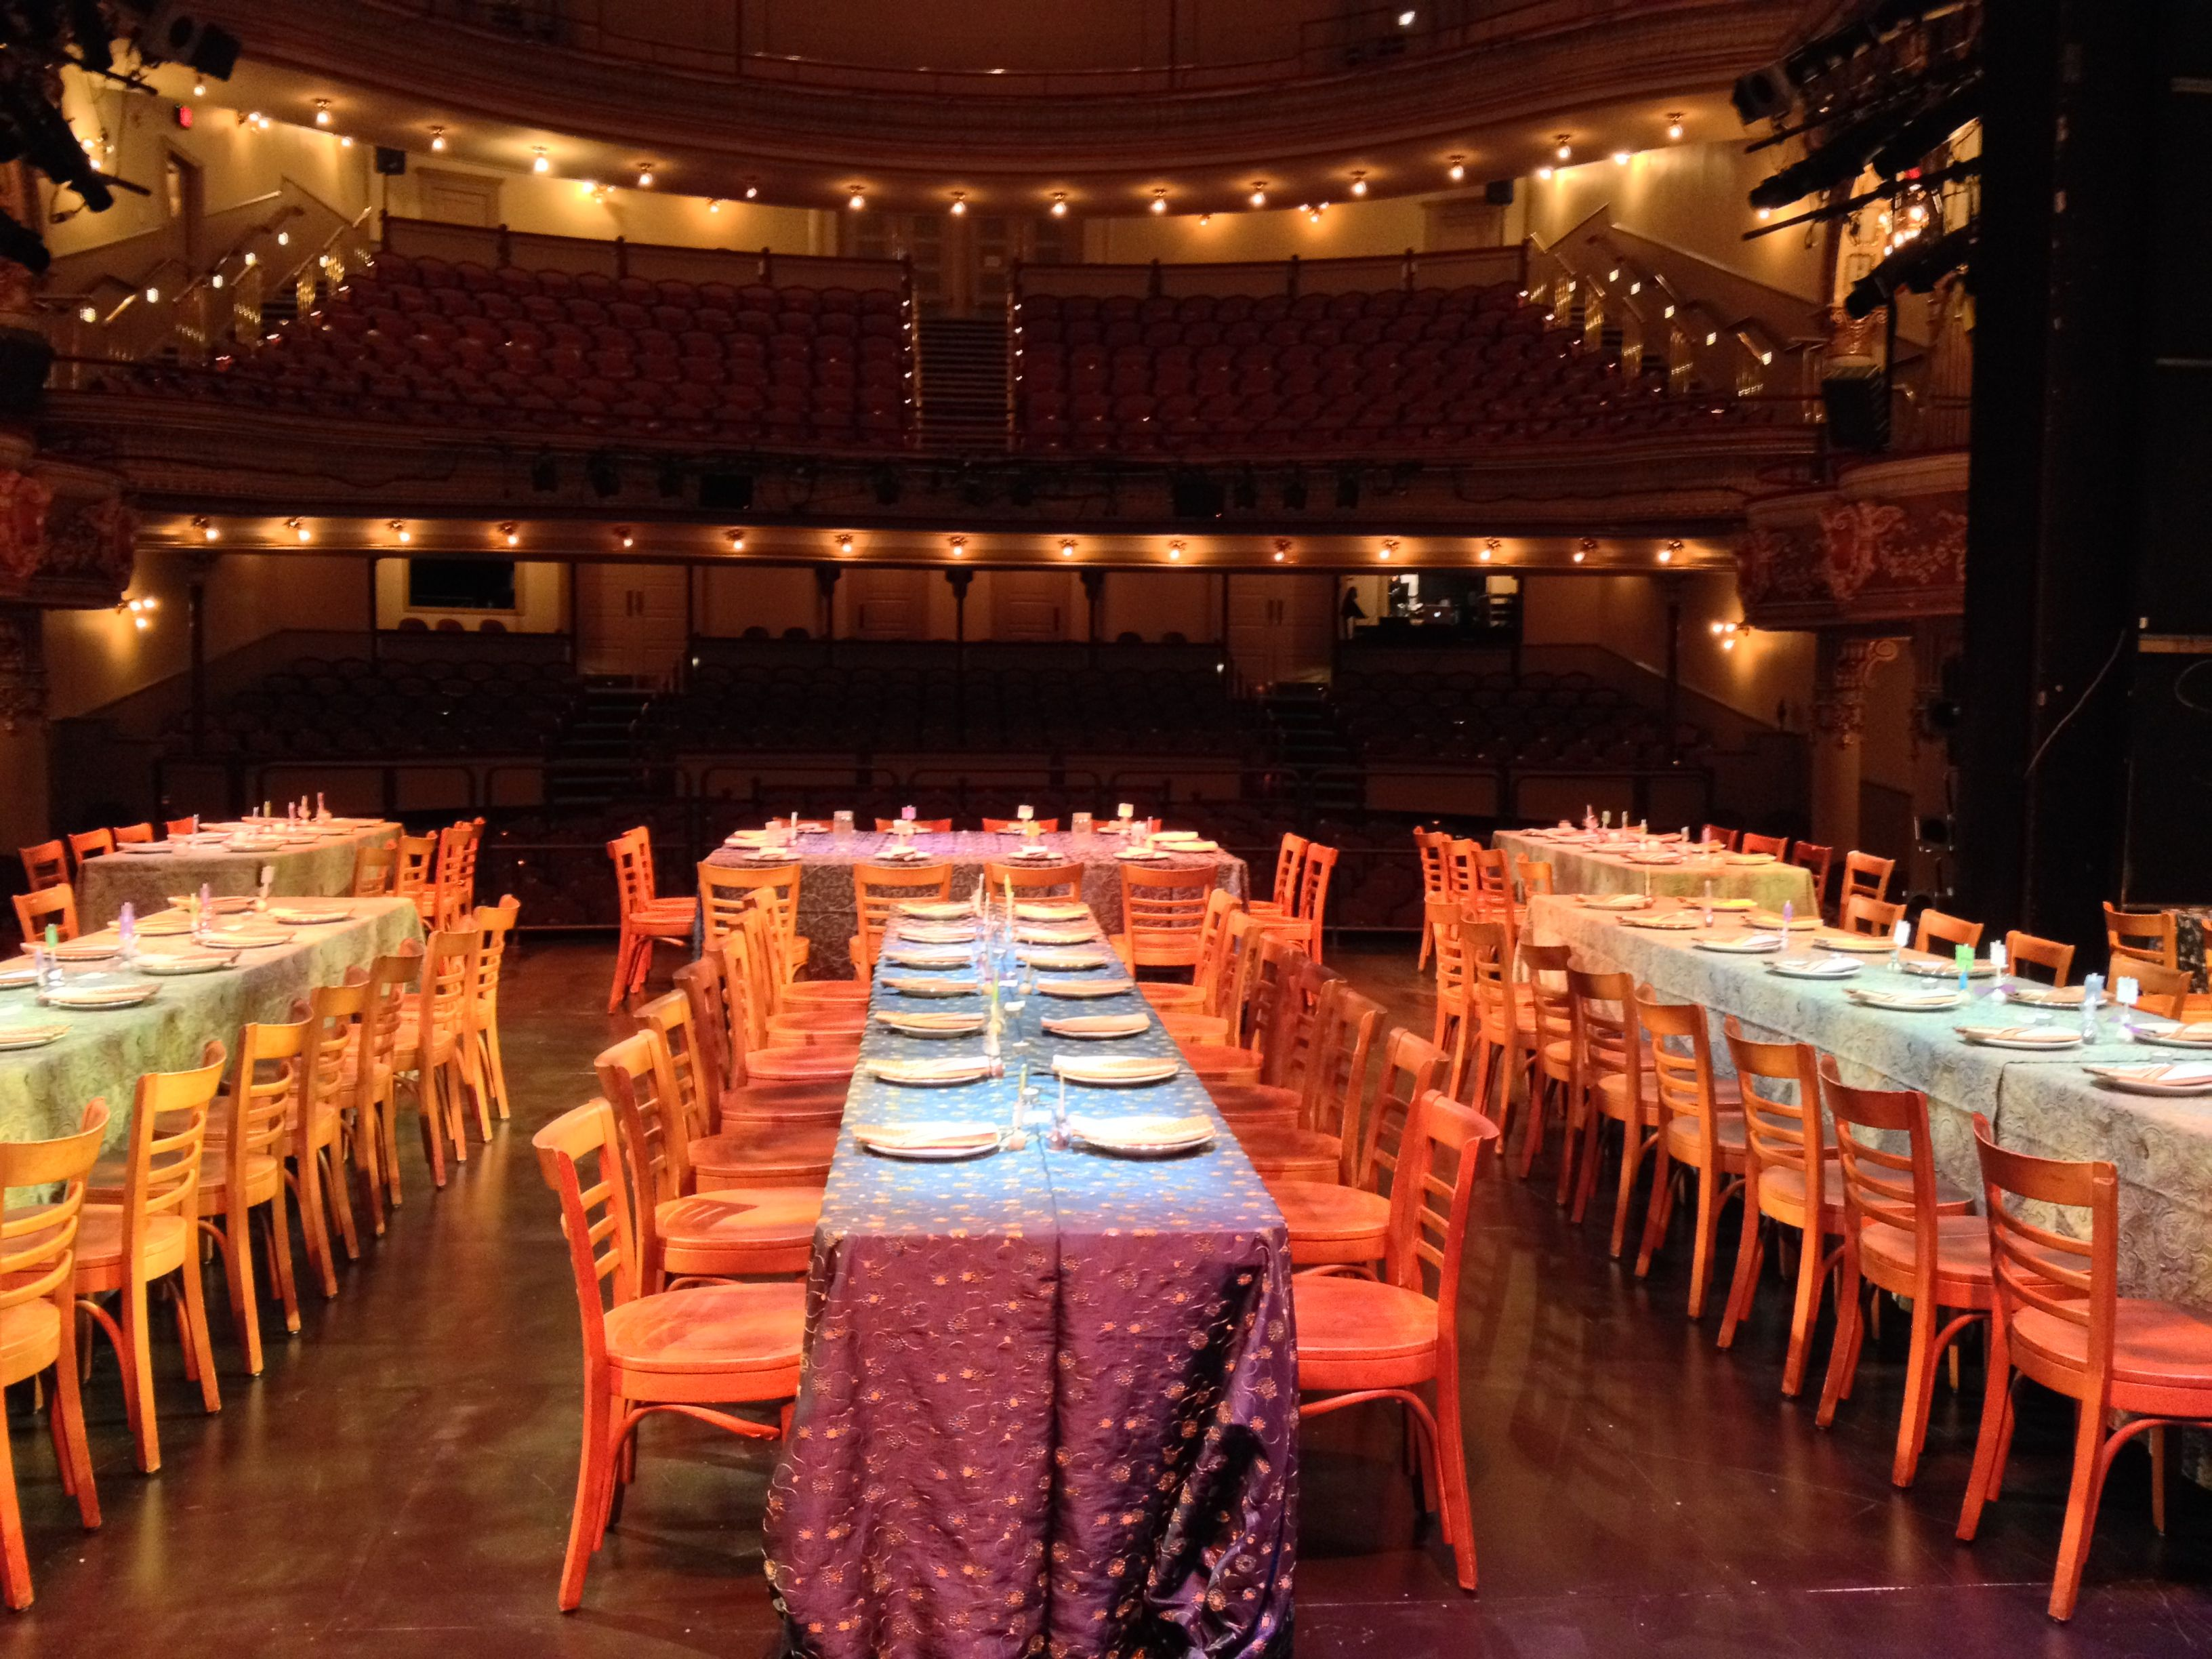 fulton opera house wedding reception in lancaster pa weddings by rettews catering http